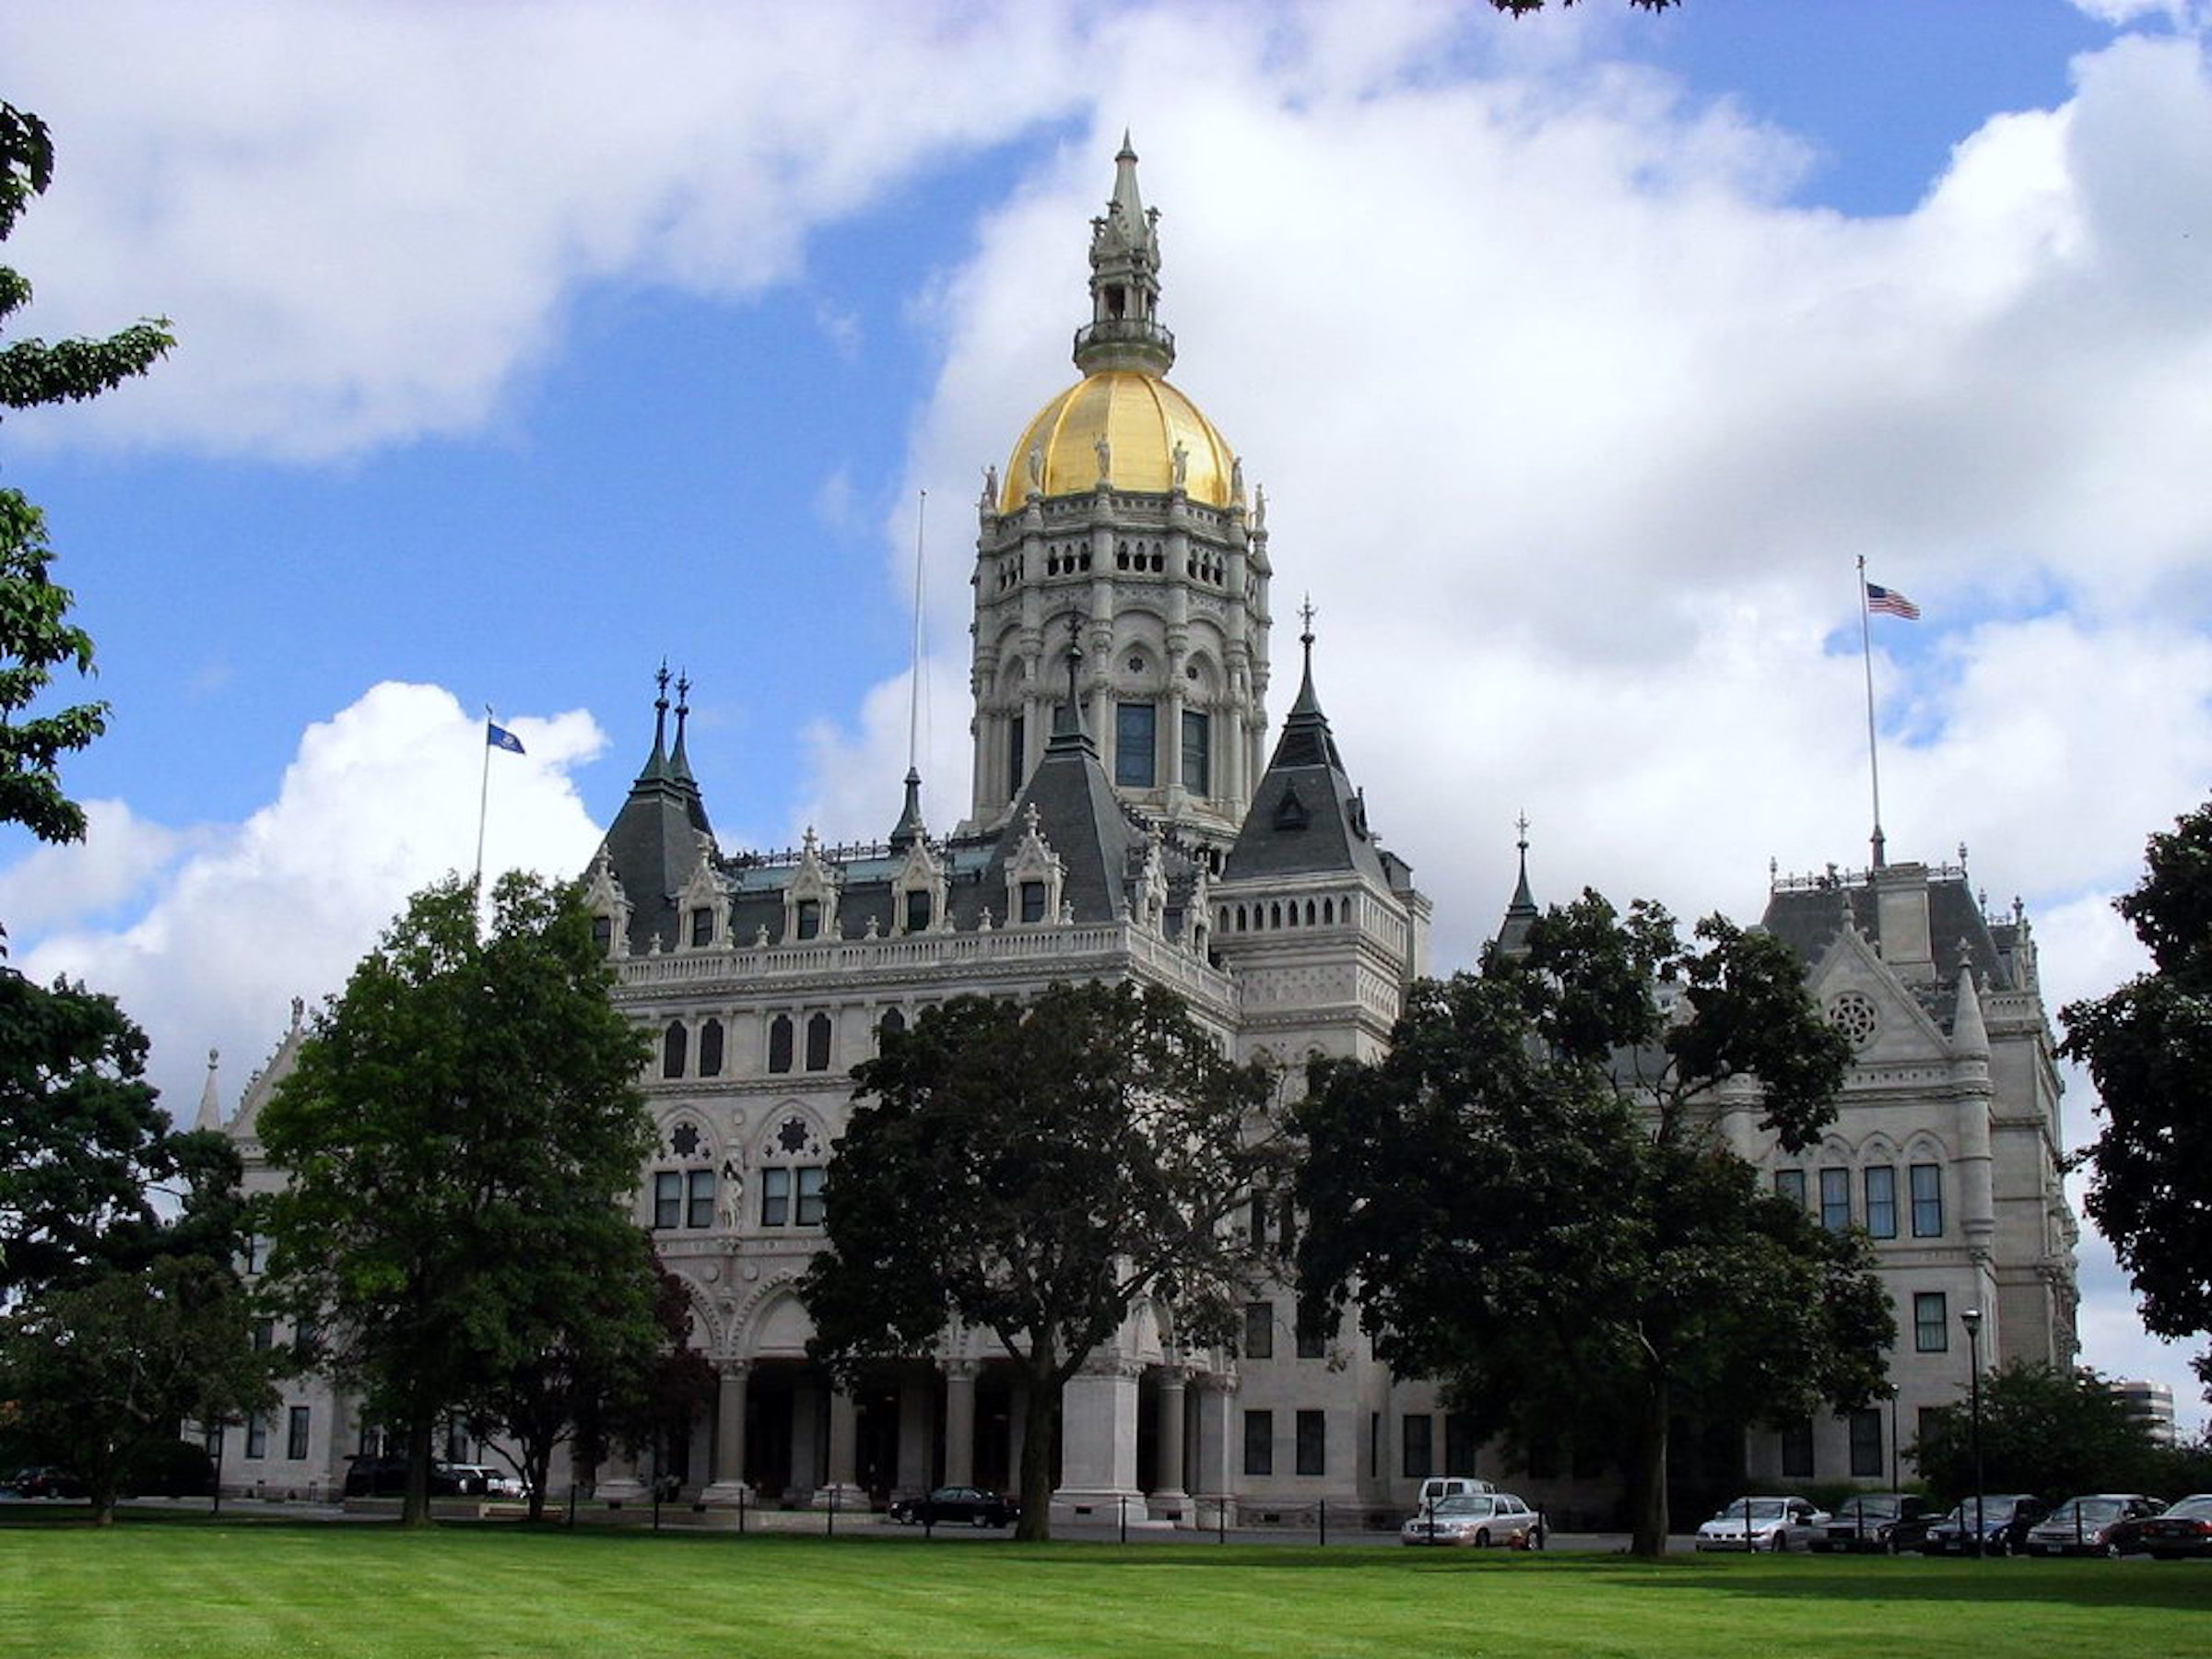 The Connecticut House of Representatives has docketed a bill that would make it easier for undocumented immigrants to receive institutional financial aid to attend public universities in Connecticut. ( jglazer75 /Wikimedia Commons)